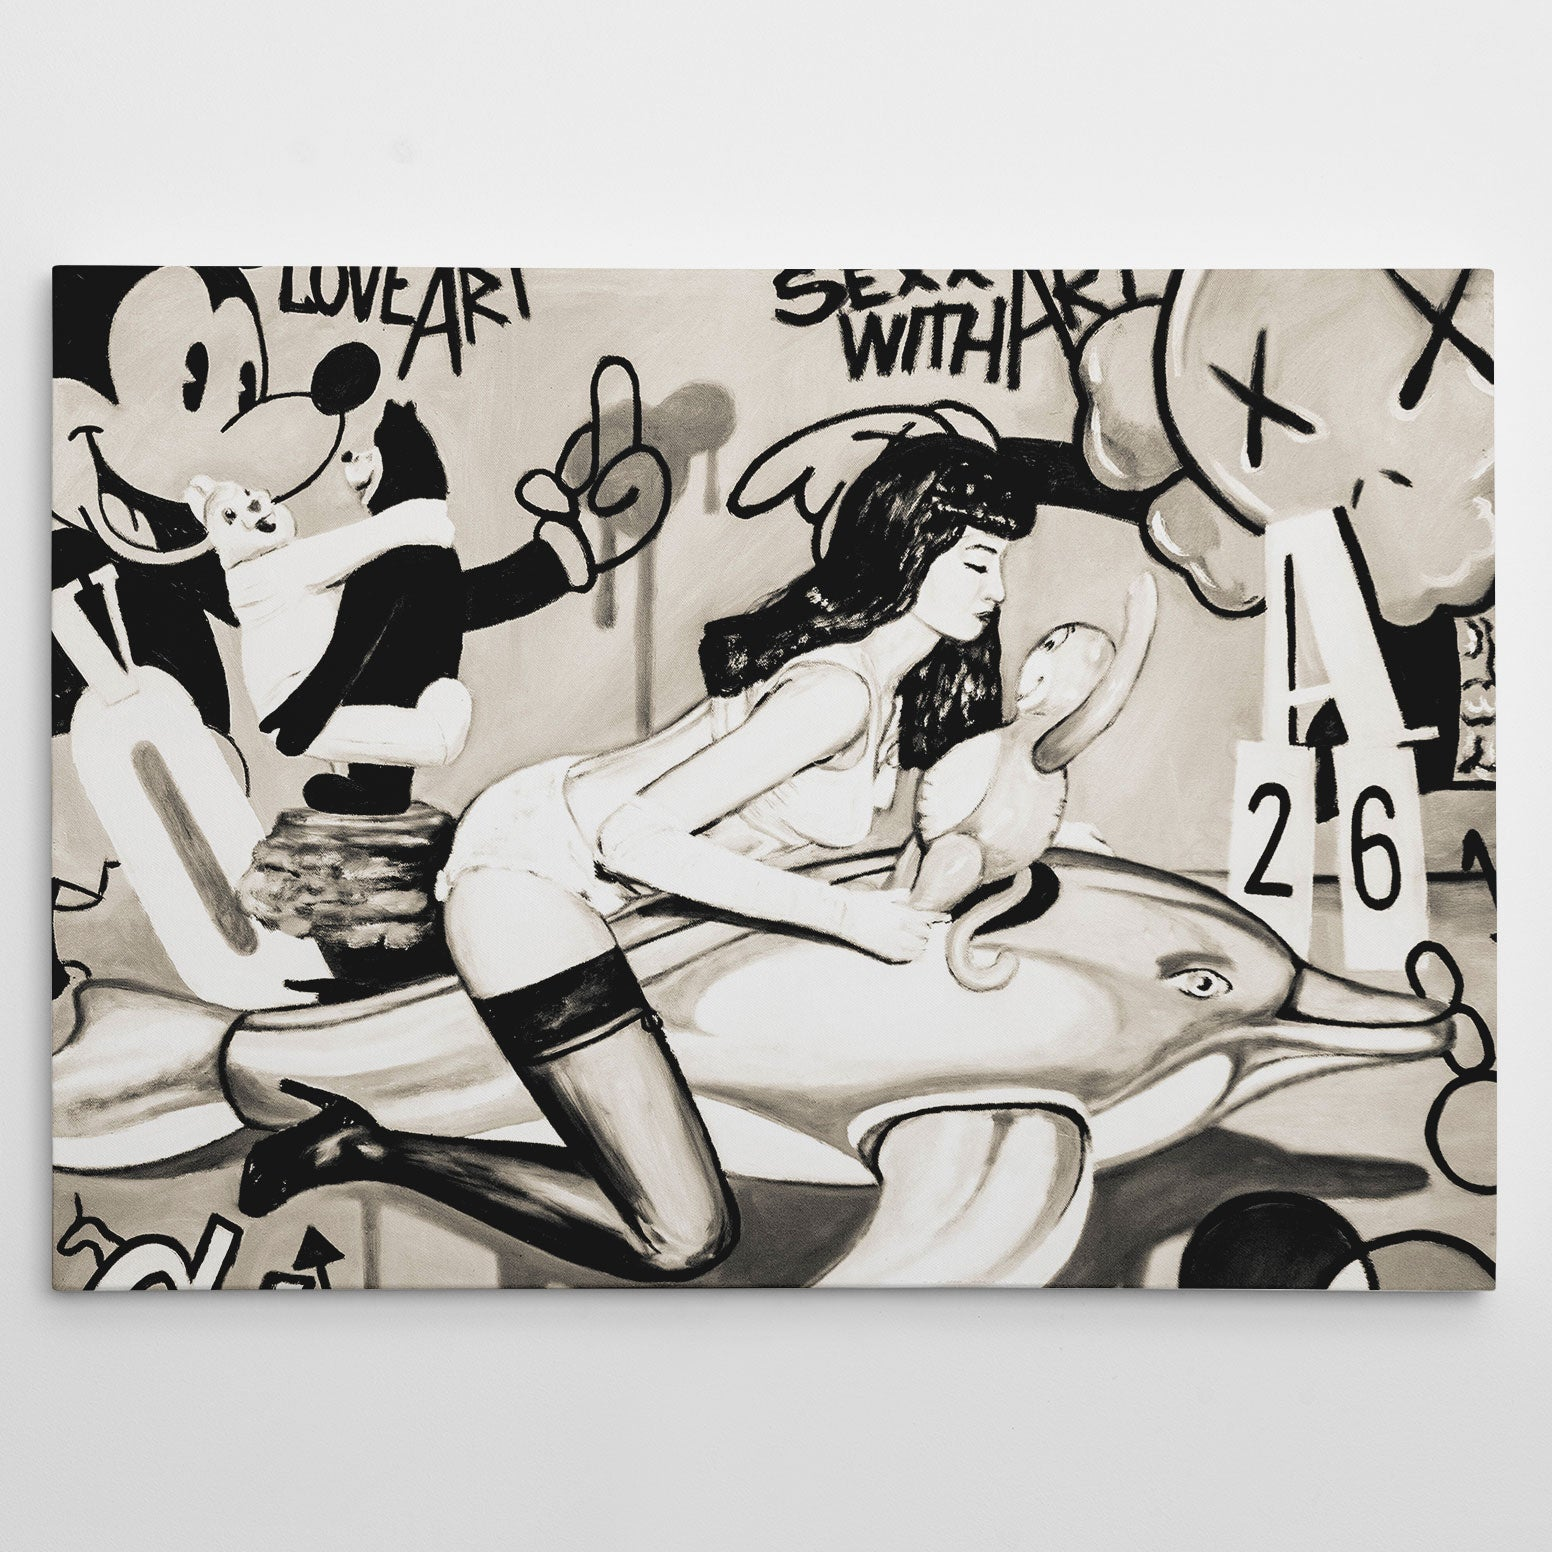 Street art style canvas print of a black and white cheeky cartoons painting, with arts mixture.